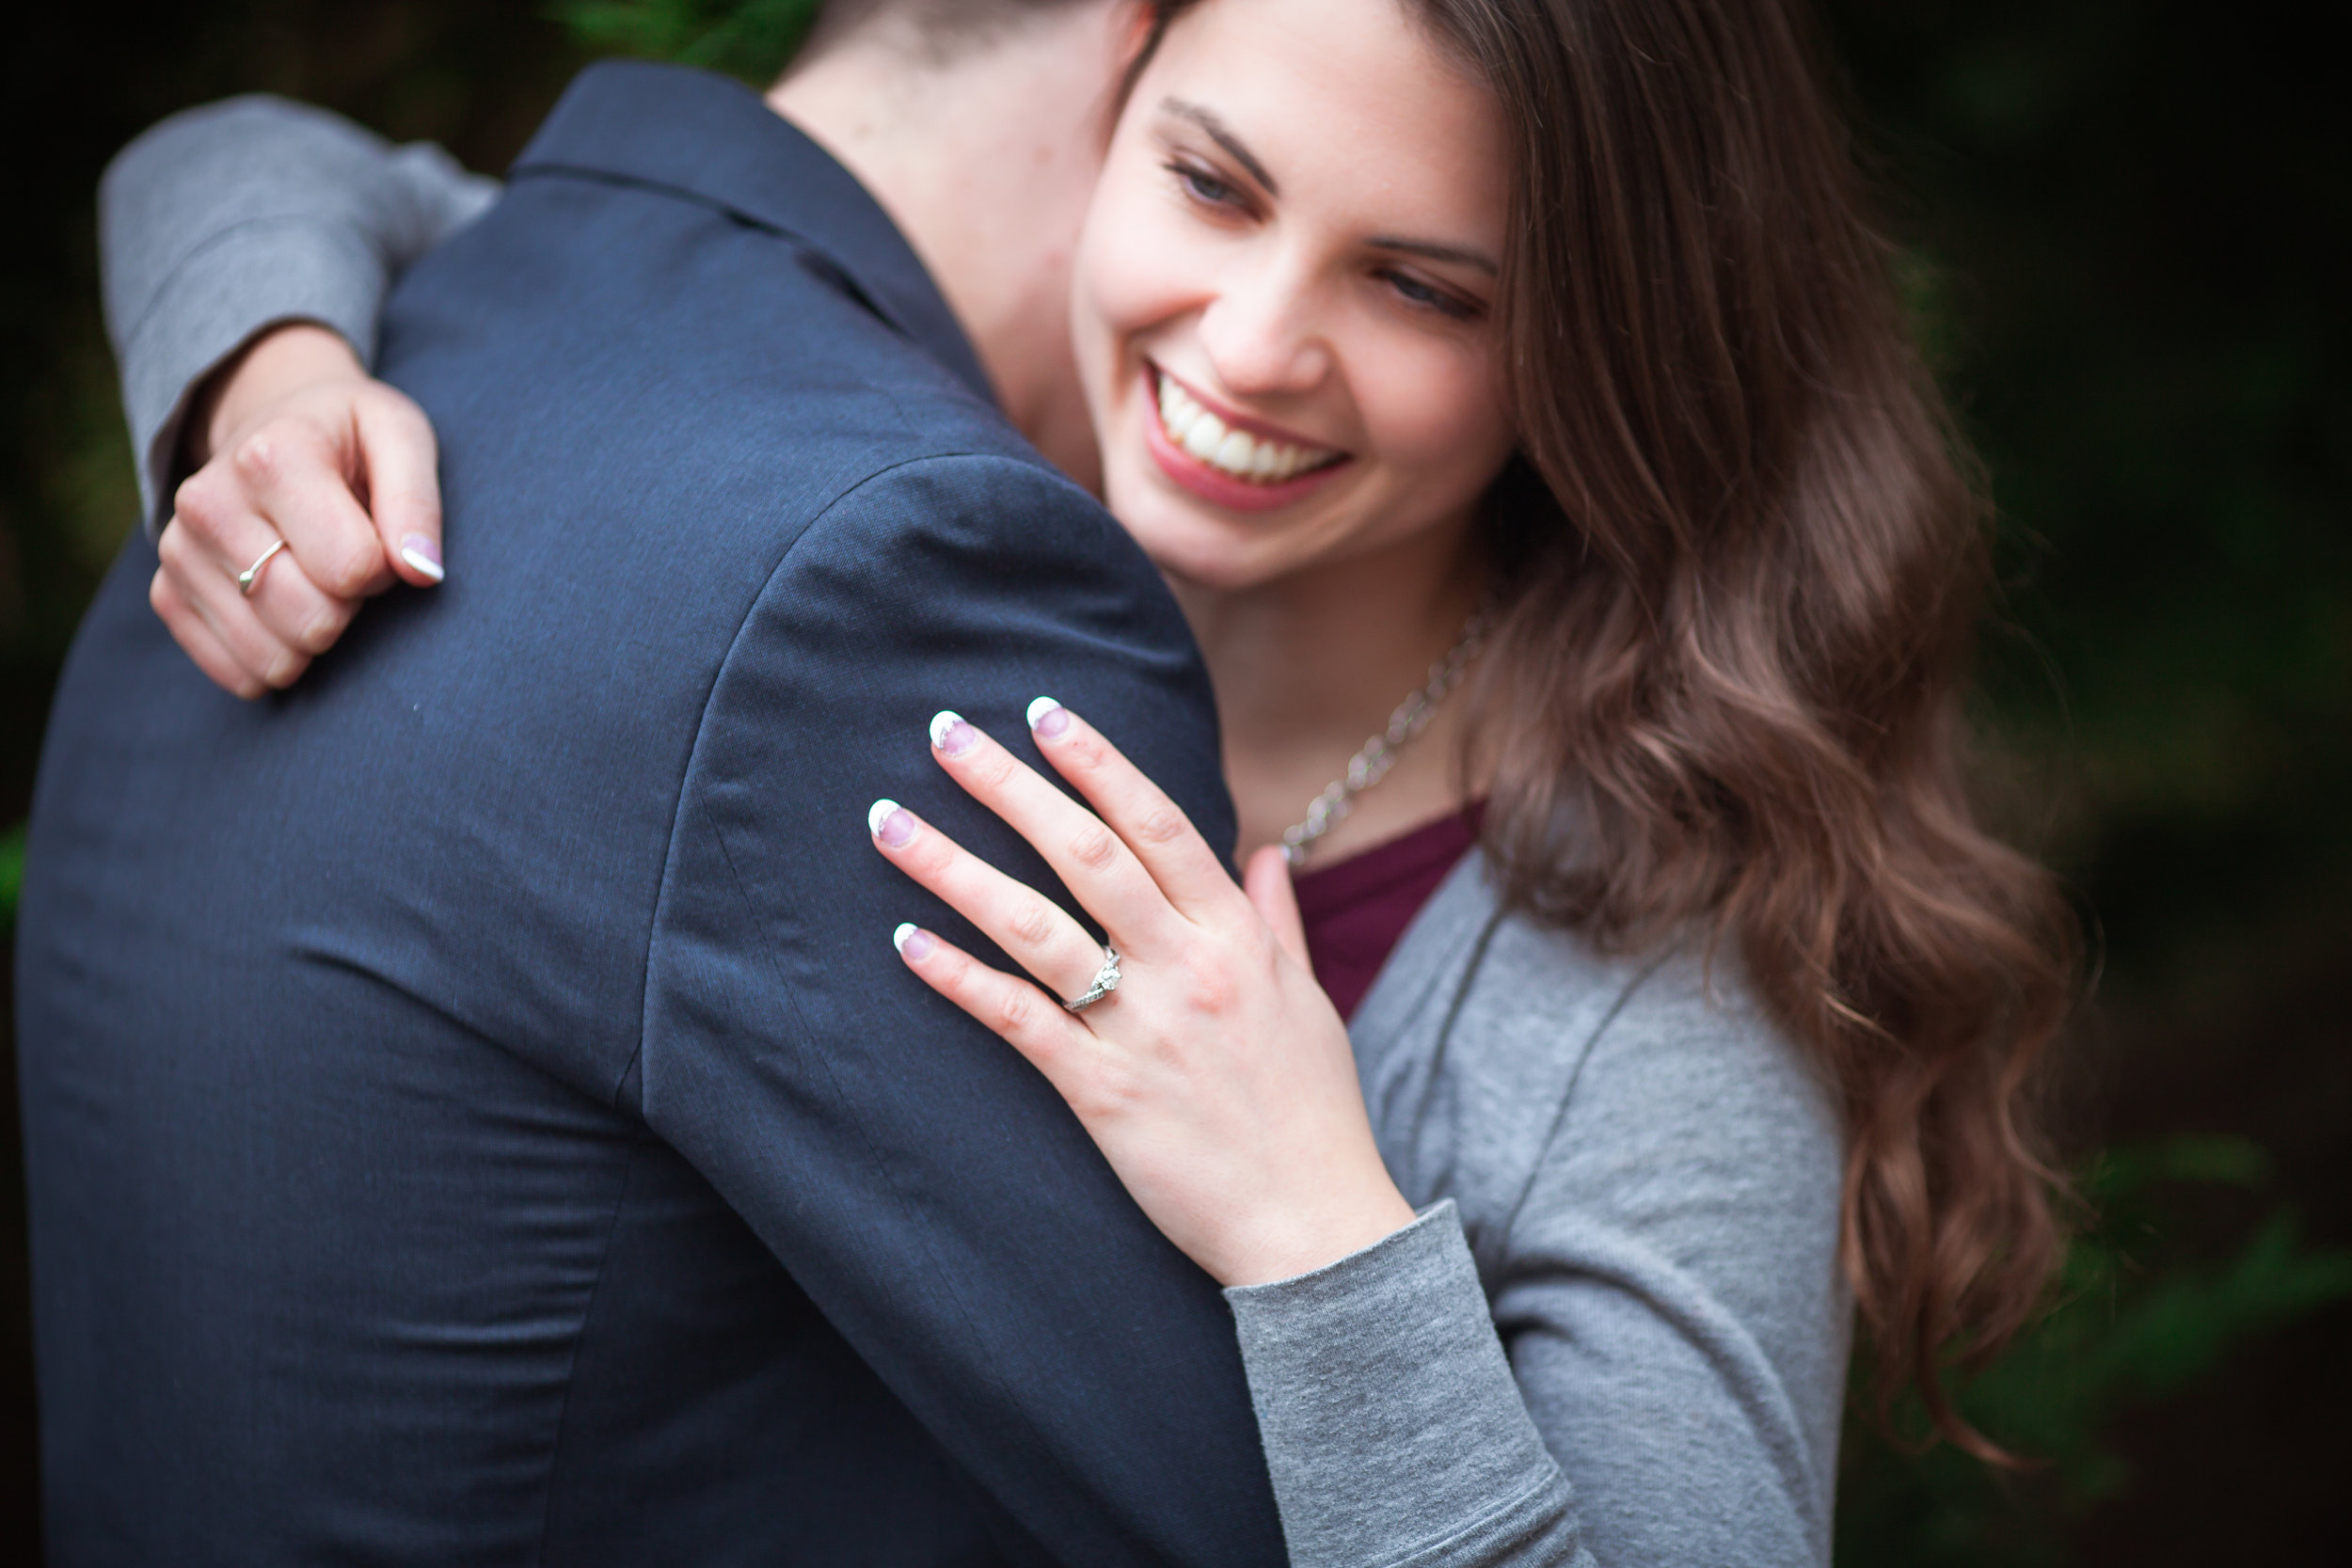 Hope_Daniel_Engagement-13.jpg